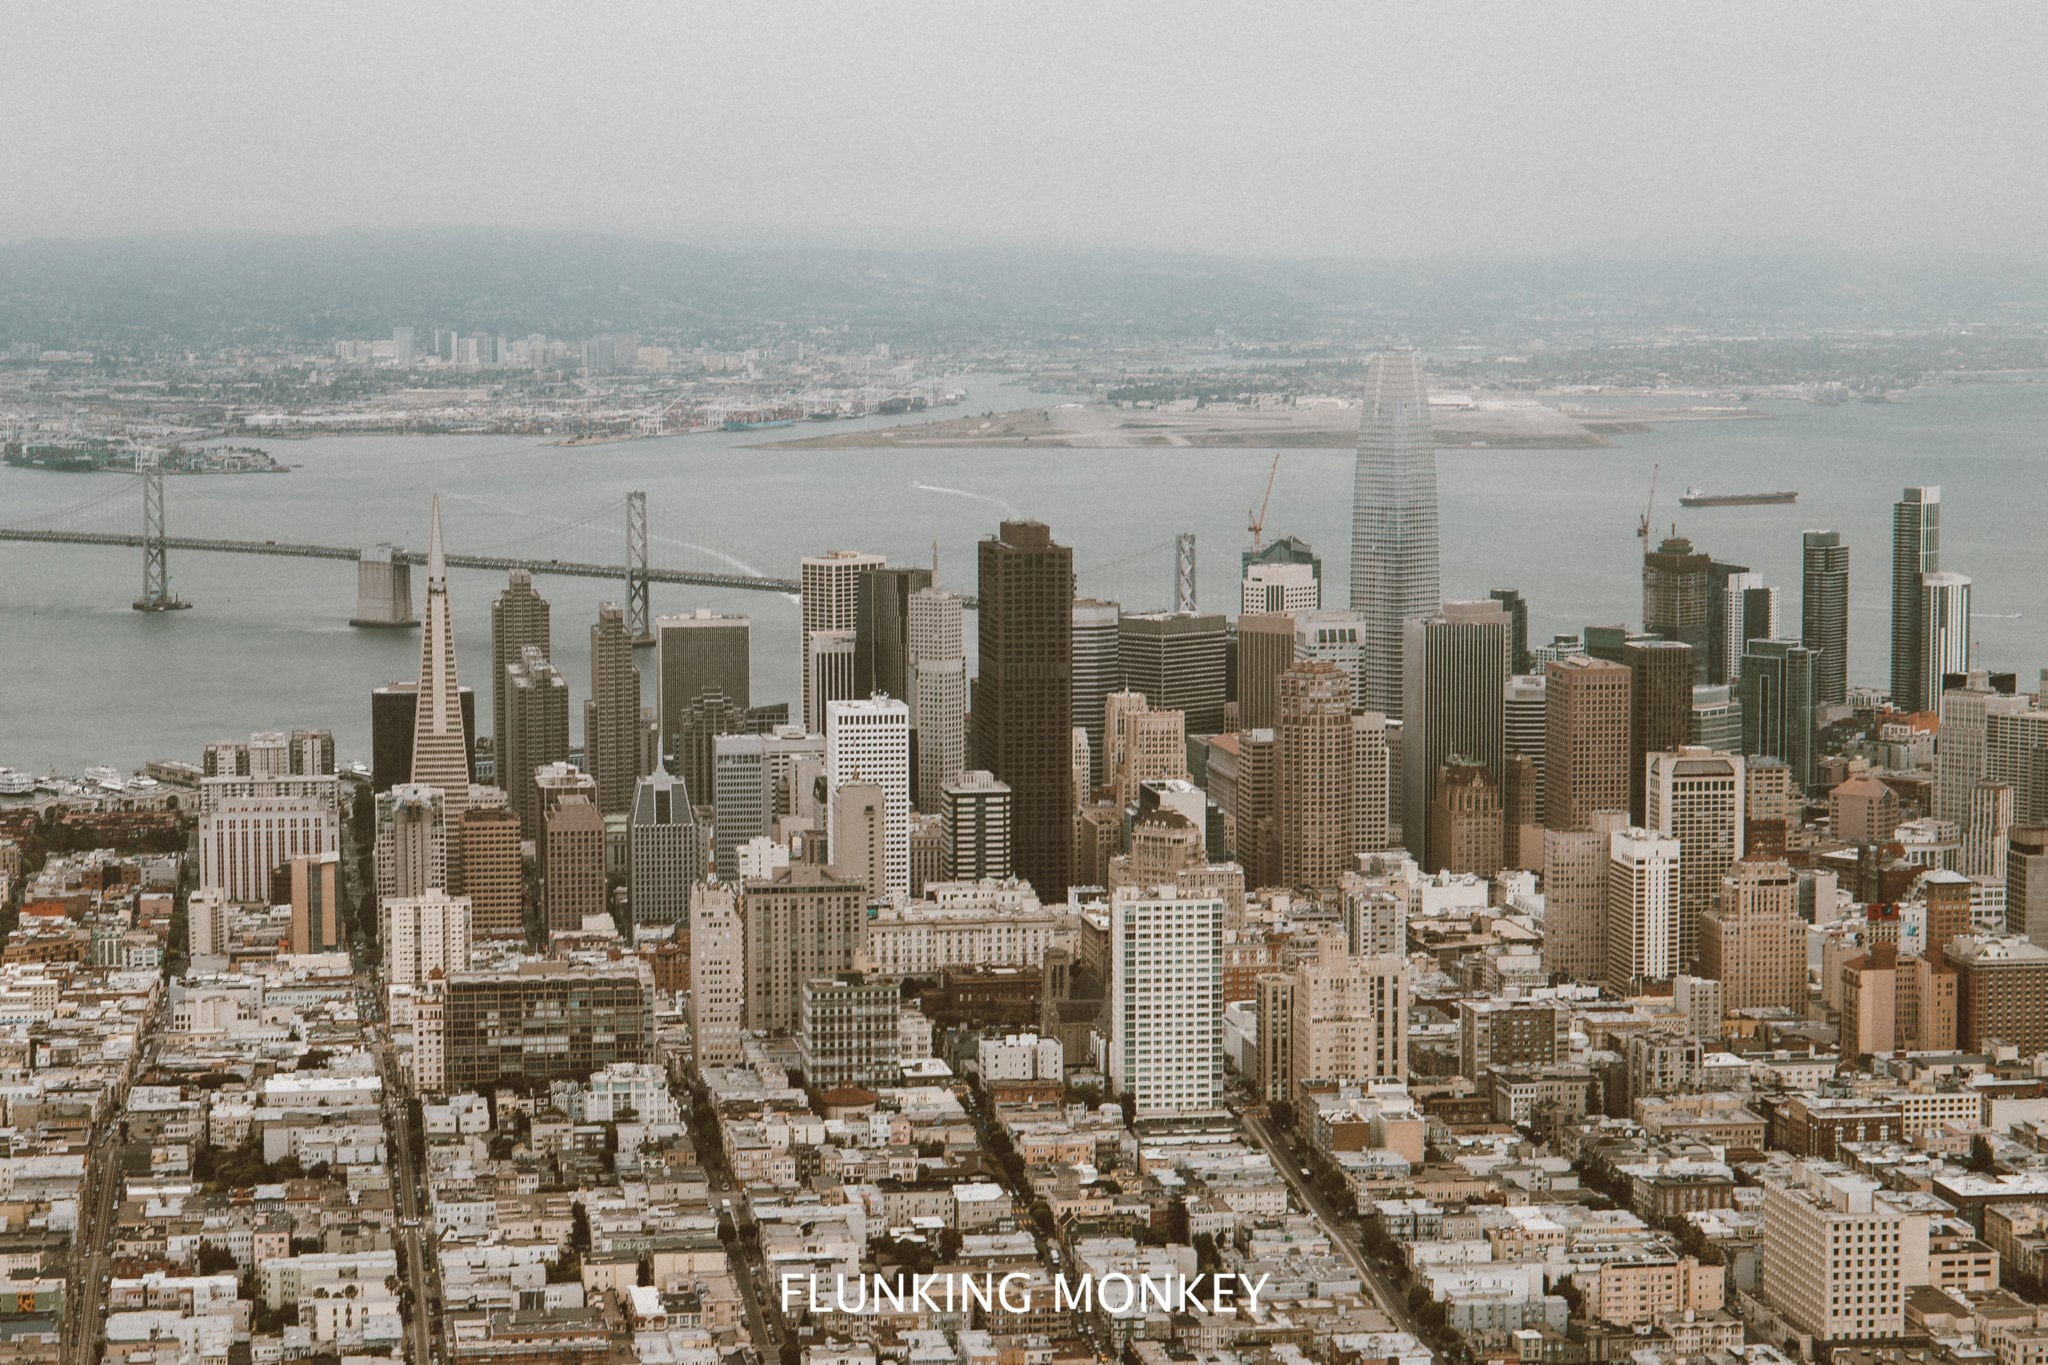 12 Ways To Have The Ultimate Northern California Road Trip - Things To Do: San Francisco Helicopter Tour